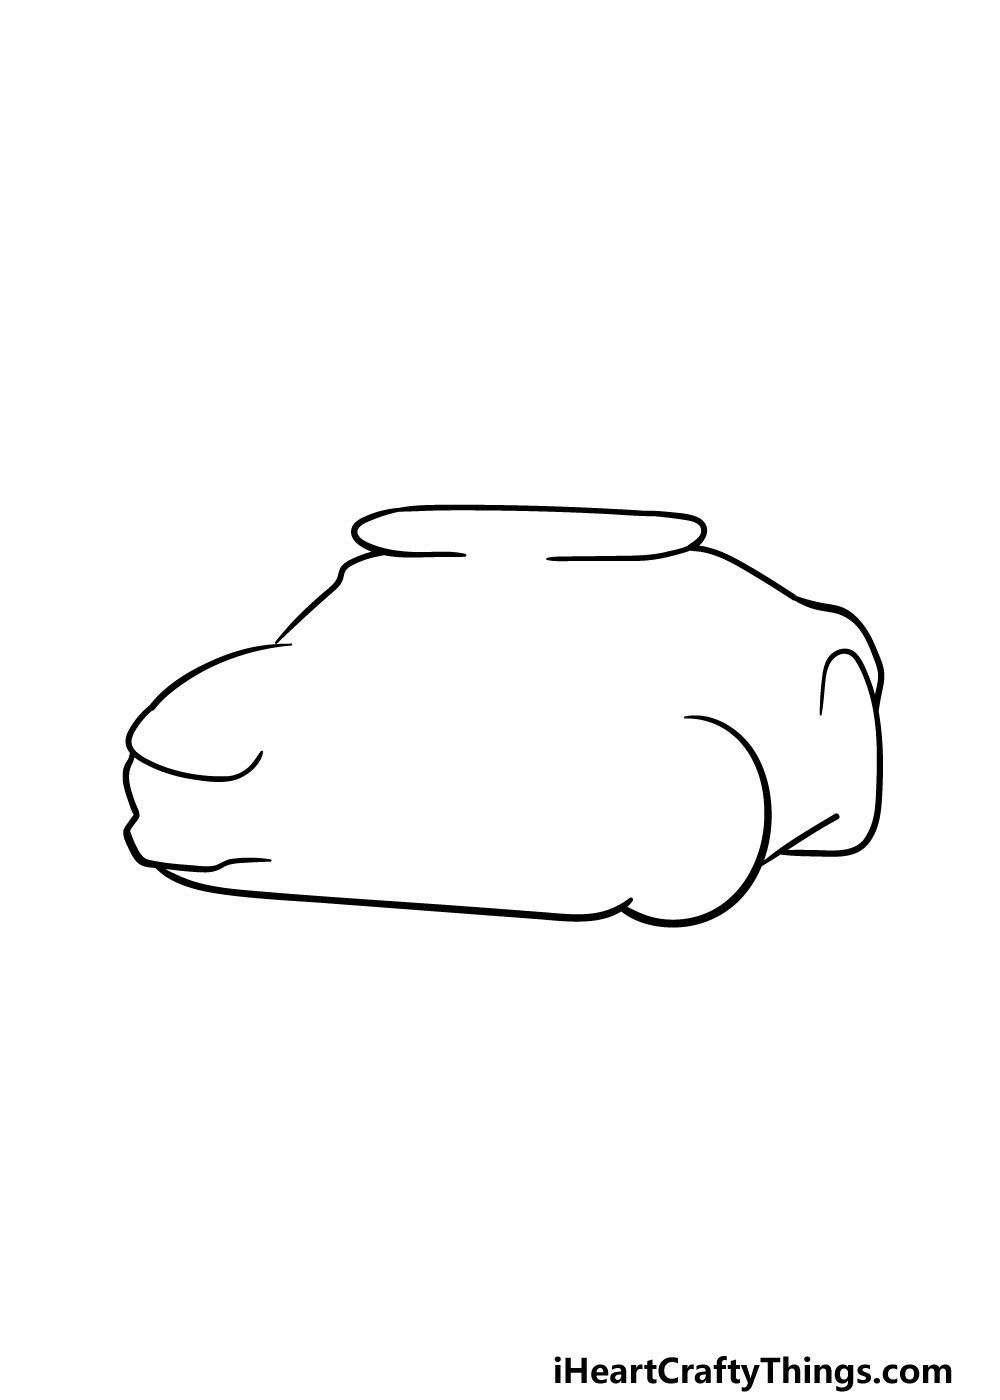 drawing a police car step 1